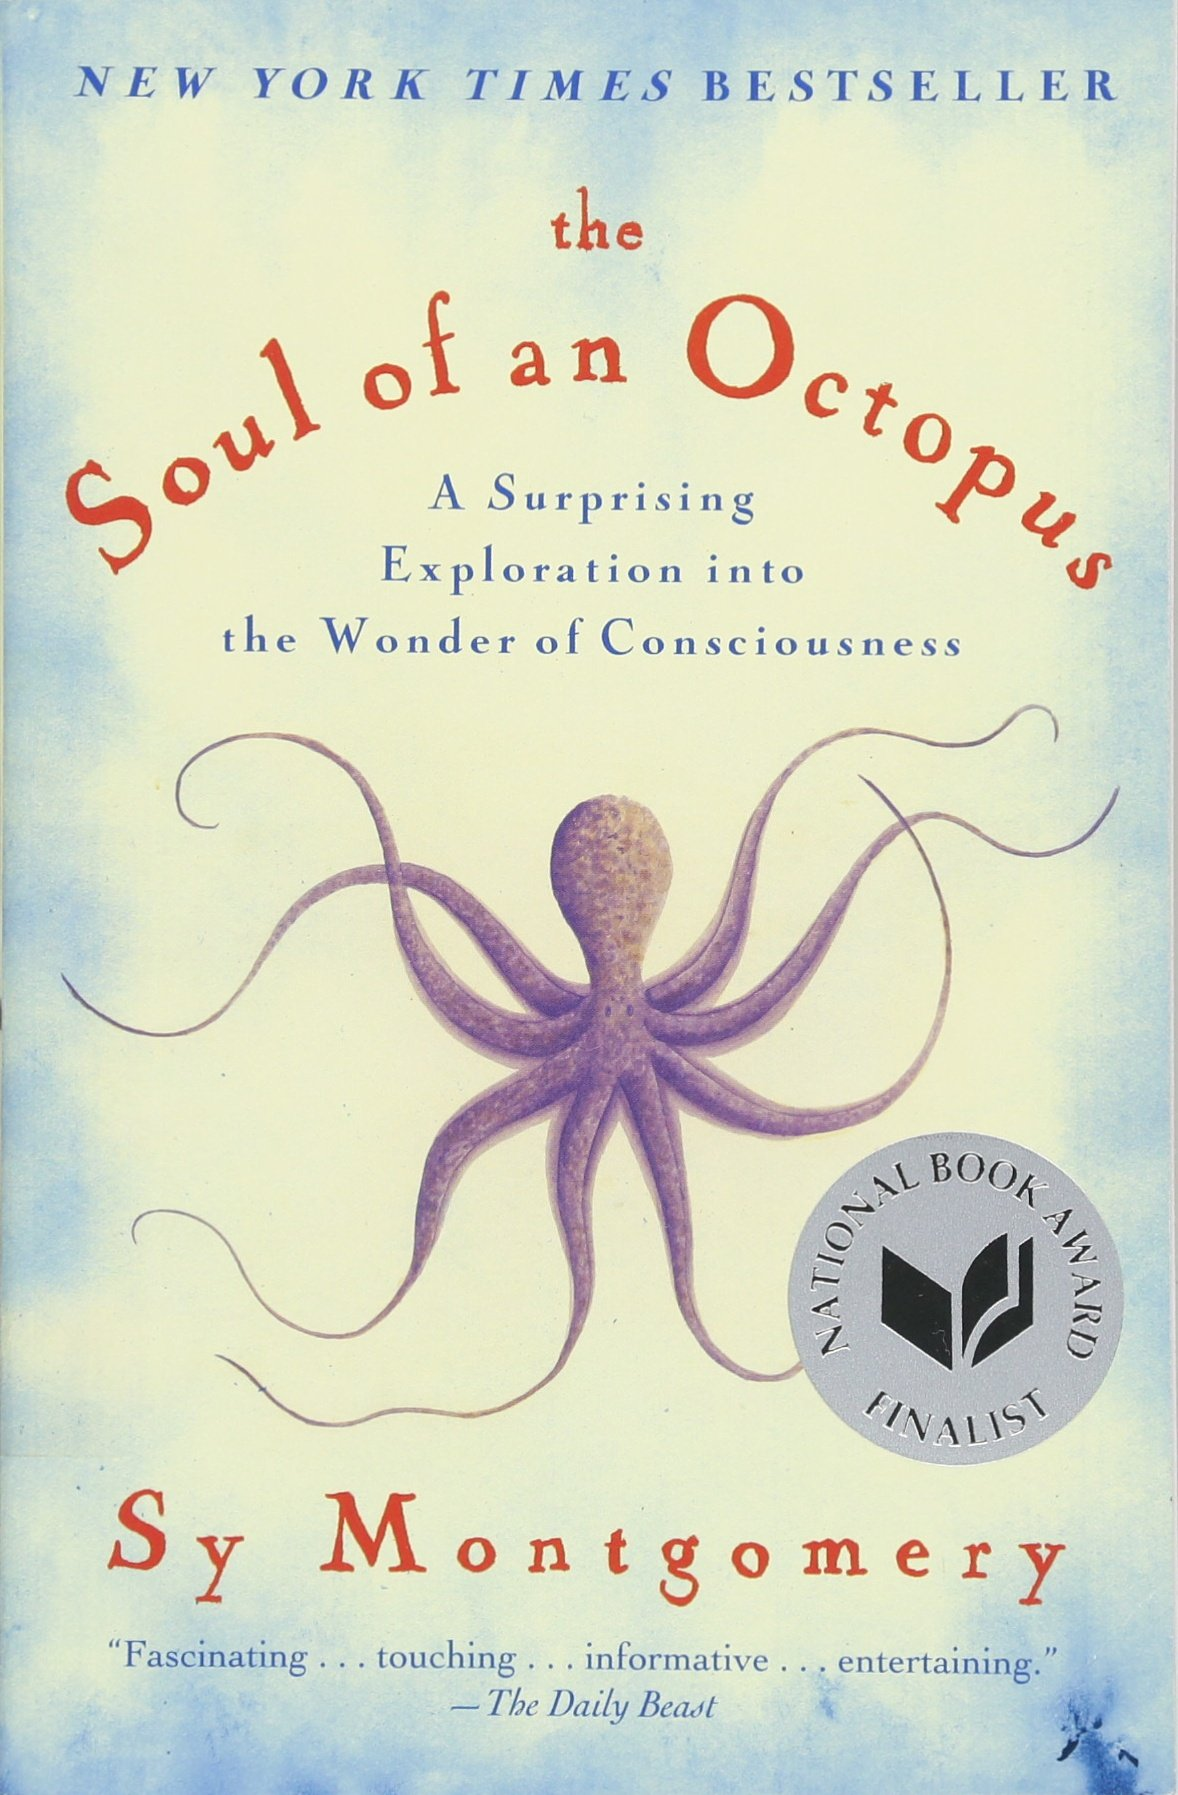 book cover for the soul of an octopus. Shows a large purple octopus and a medal indicating that the book was a national book award finalist